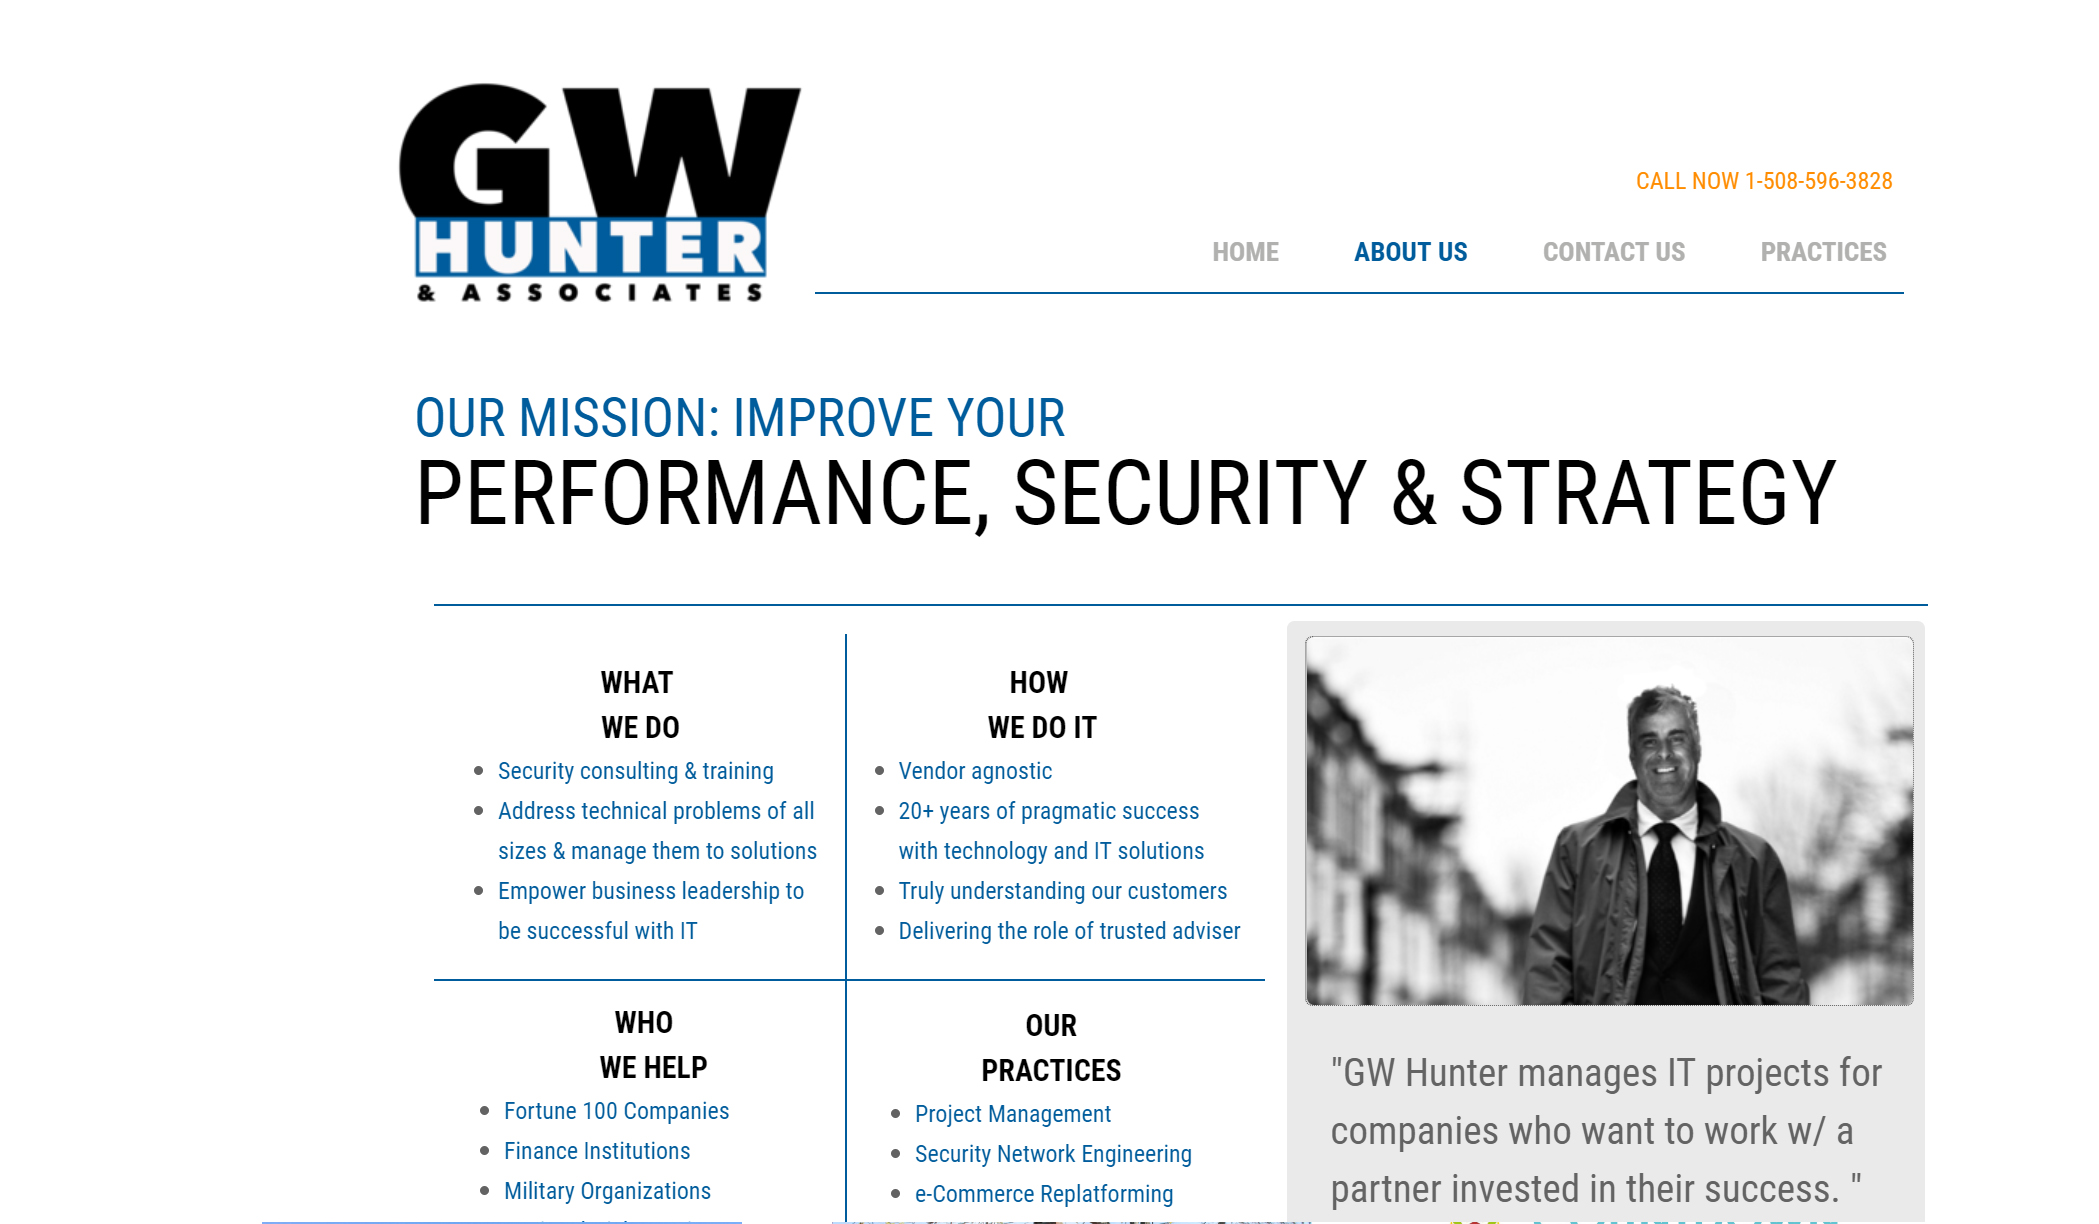 GW Hunter & Associates